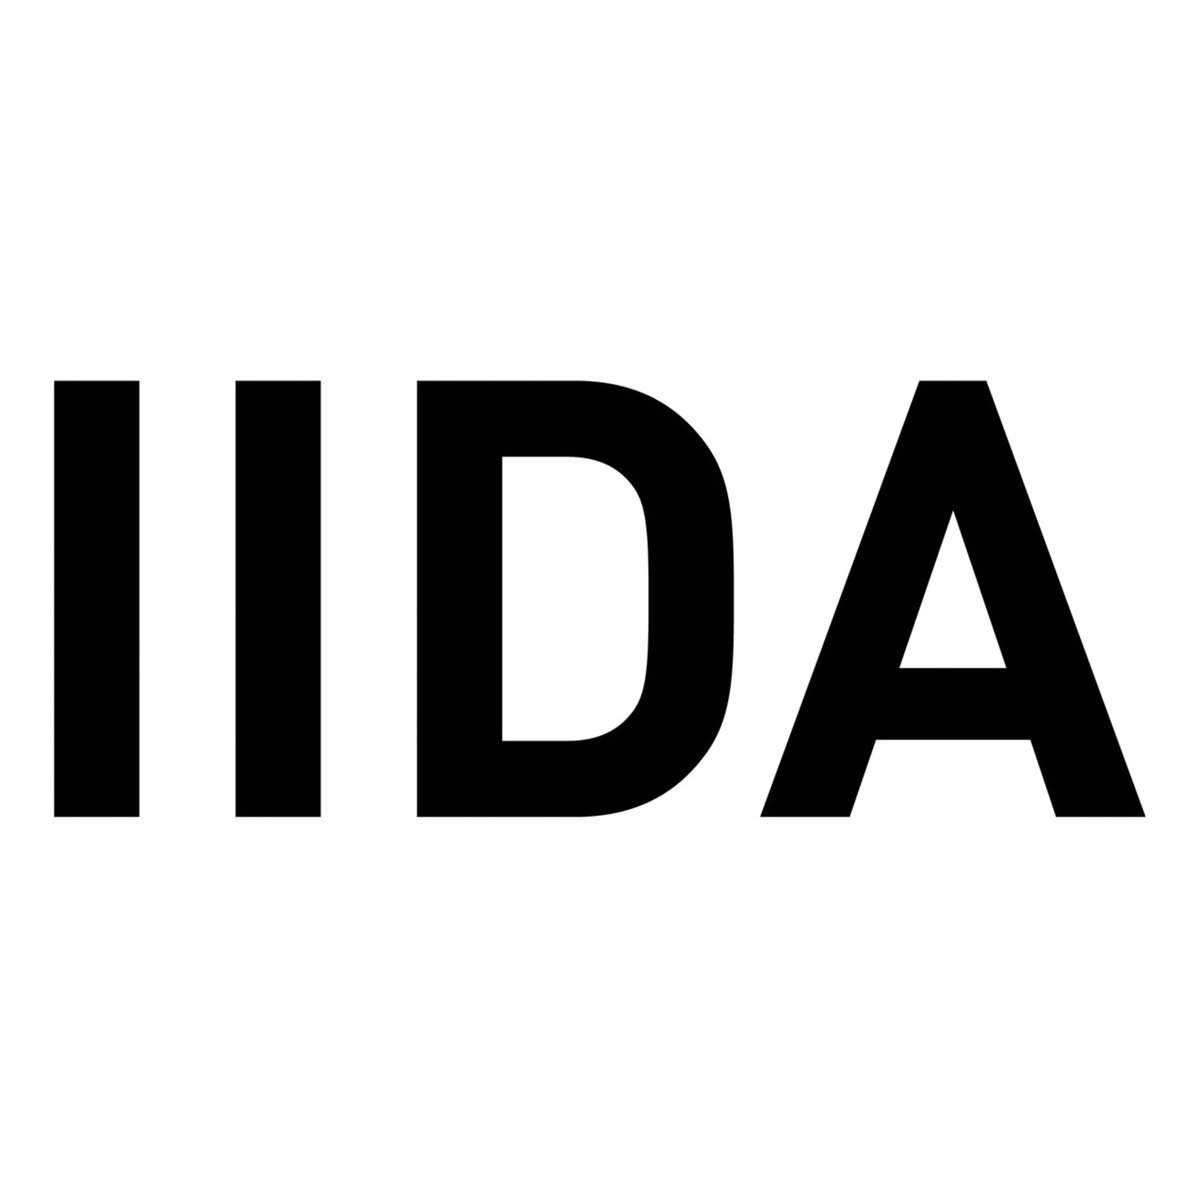 IIDA Announces Winners of 20th Annual IIDA/HD Product Design Competition